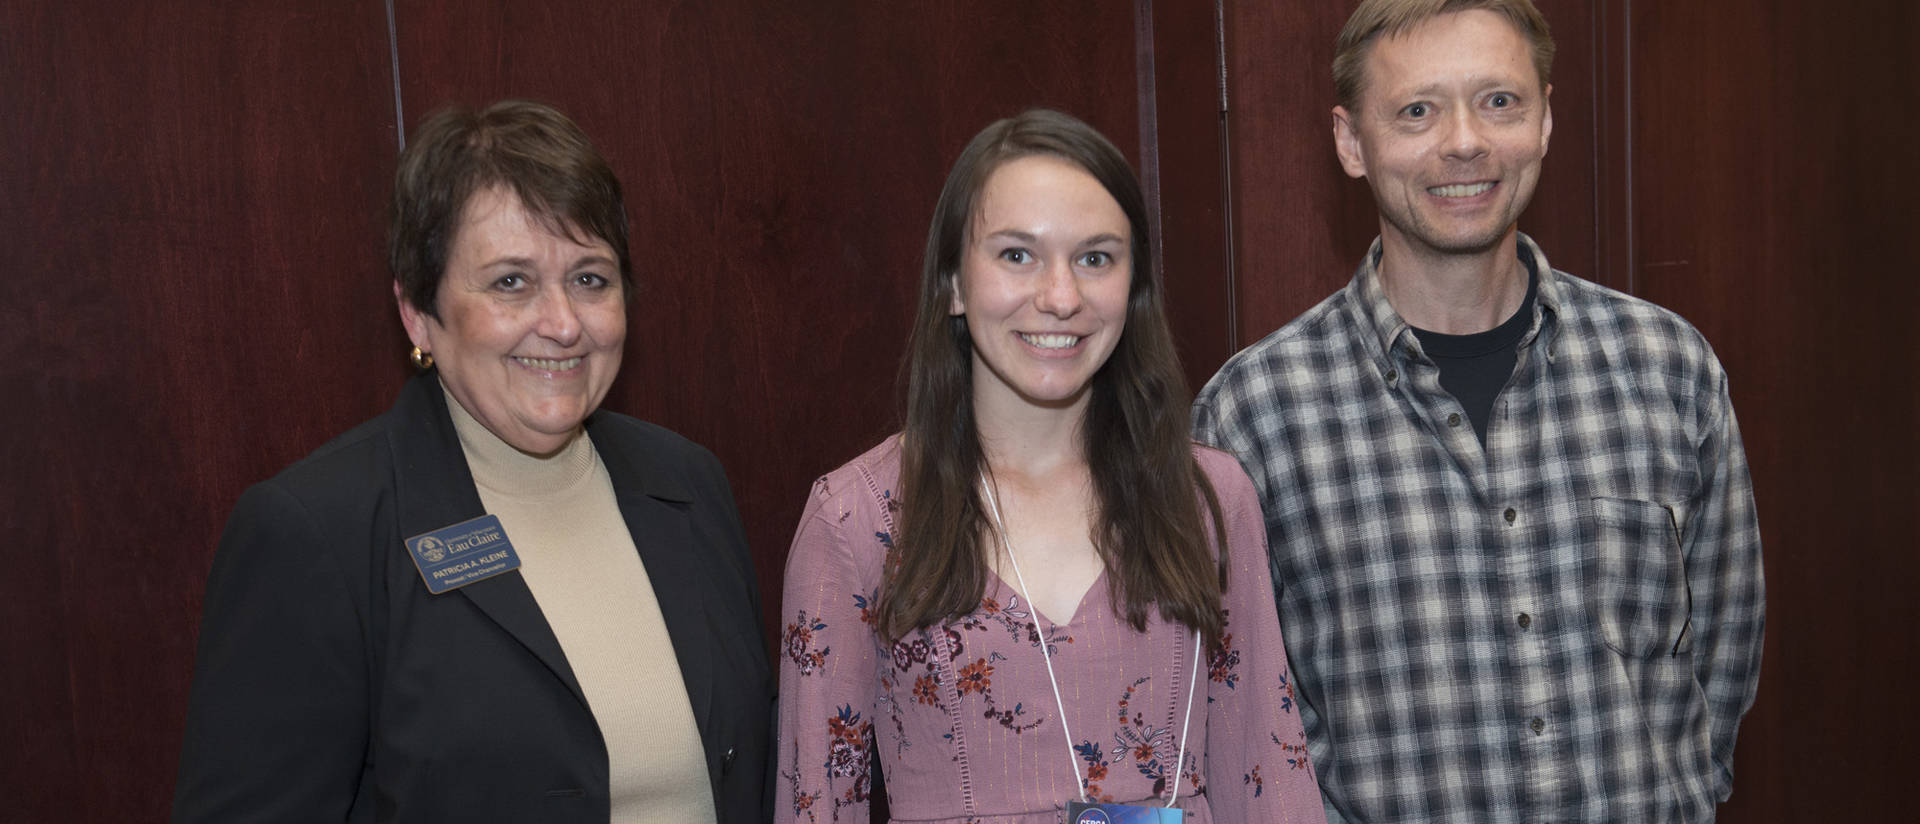 Honorable Mention Eryn Mares (middle) with mentor Dan Herman and Provost Kleine.